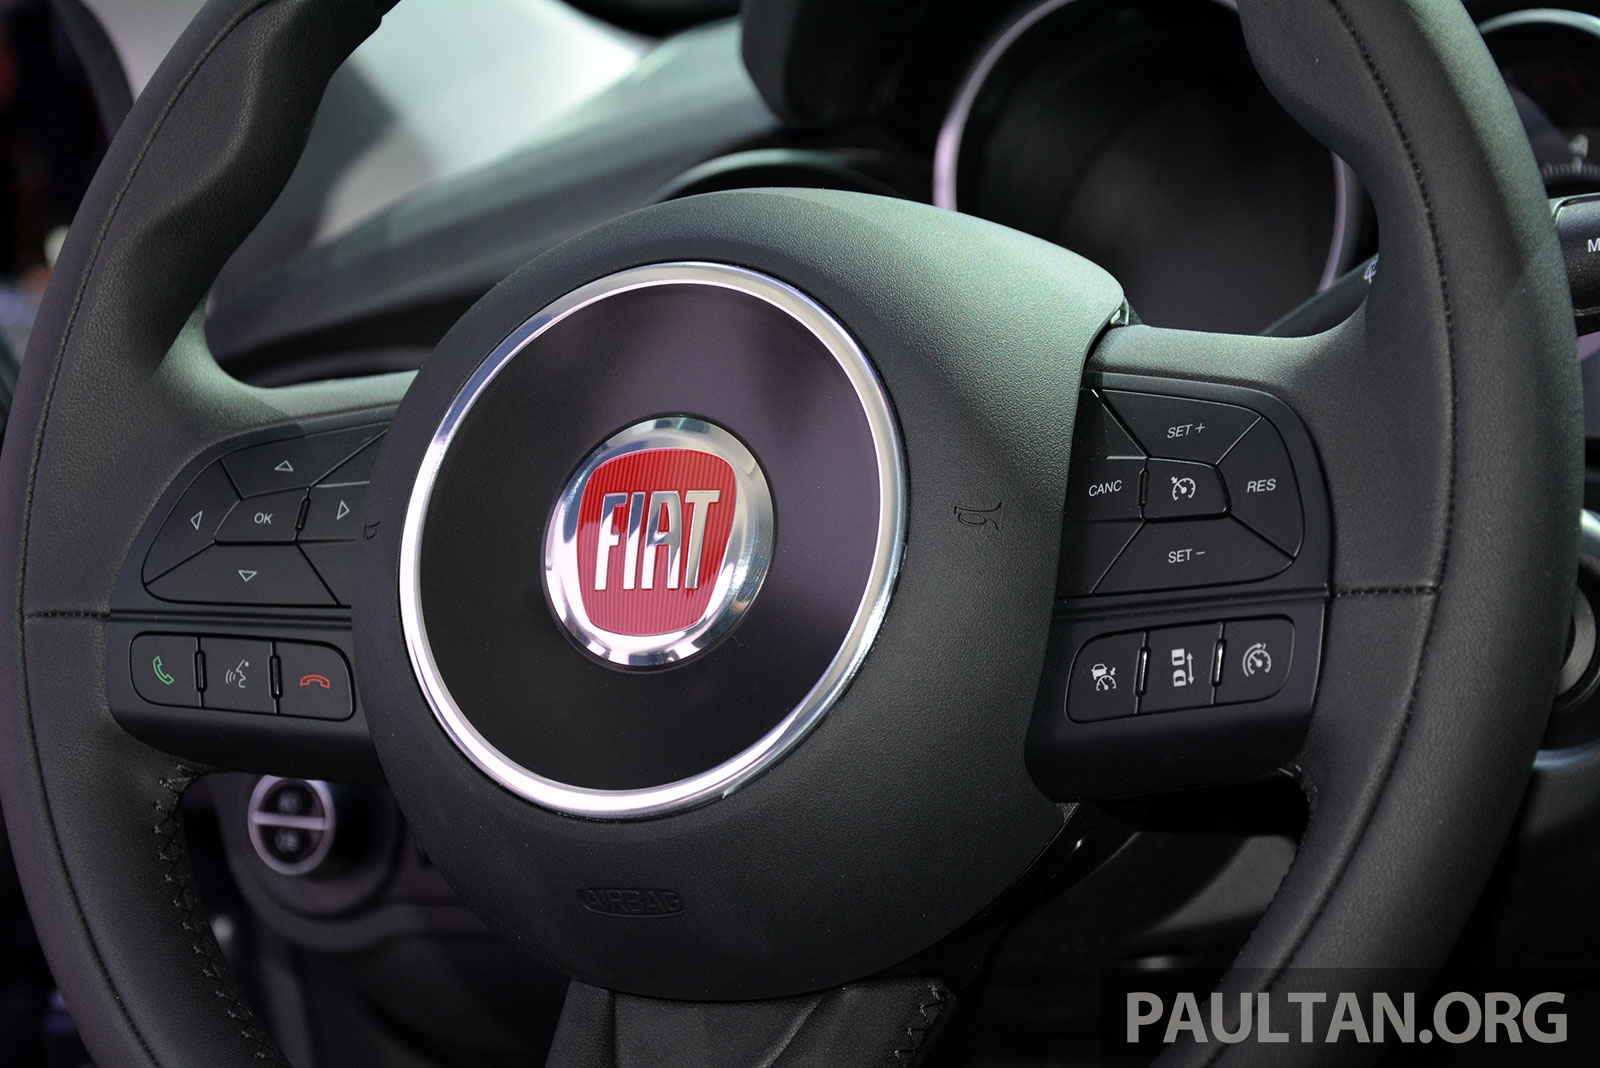 fiat 500x mini crossover officially unveiled in paris paul tan image 277838. Black Bedroom Furniture Sets. Home Design Ideas